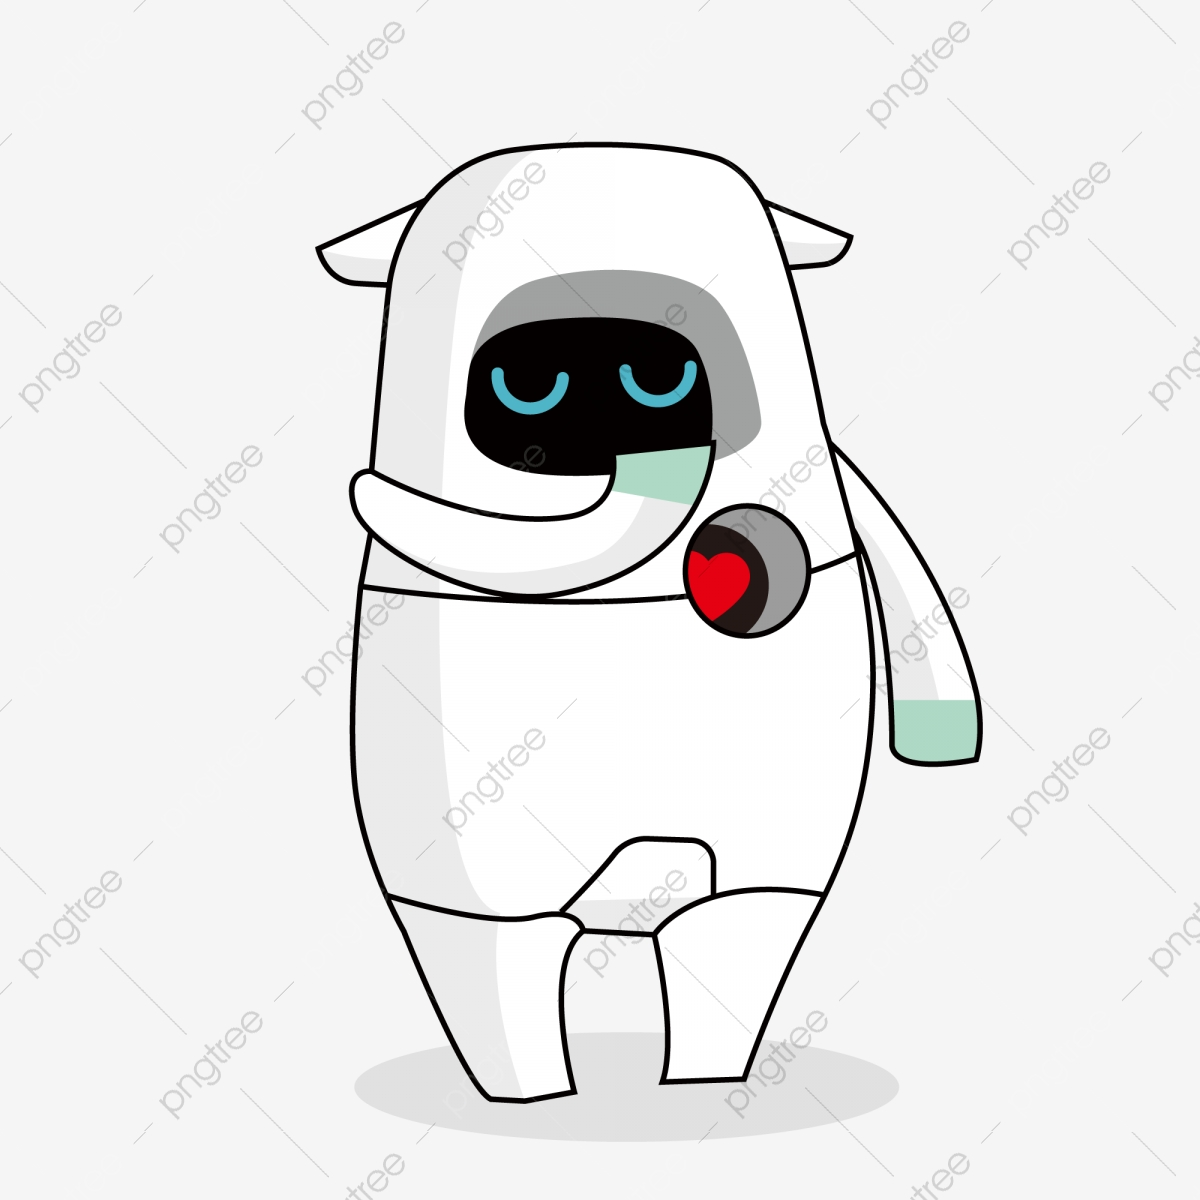 Colorful Robot With Mouth Wide Open Cartoon Royalty Free Cliparts, Vectors,  And Stock Illustration. Image 95294986.